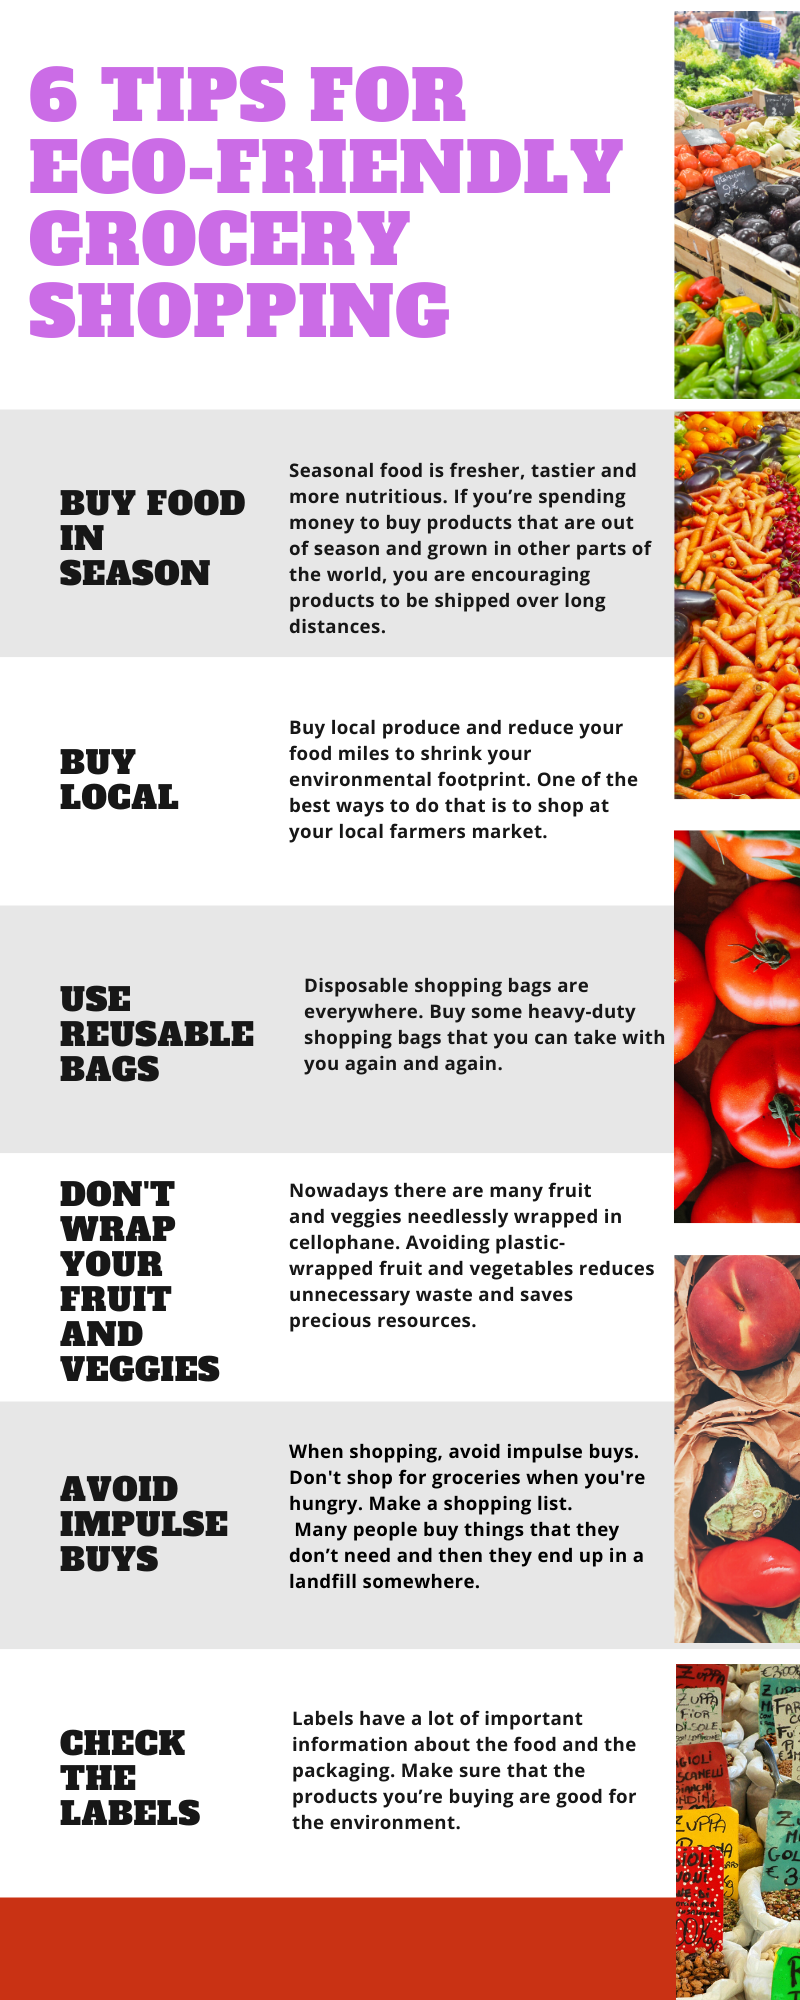 tips fpr eco-friendly shopping